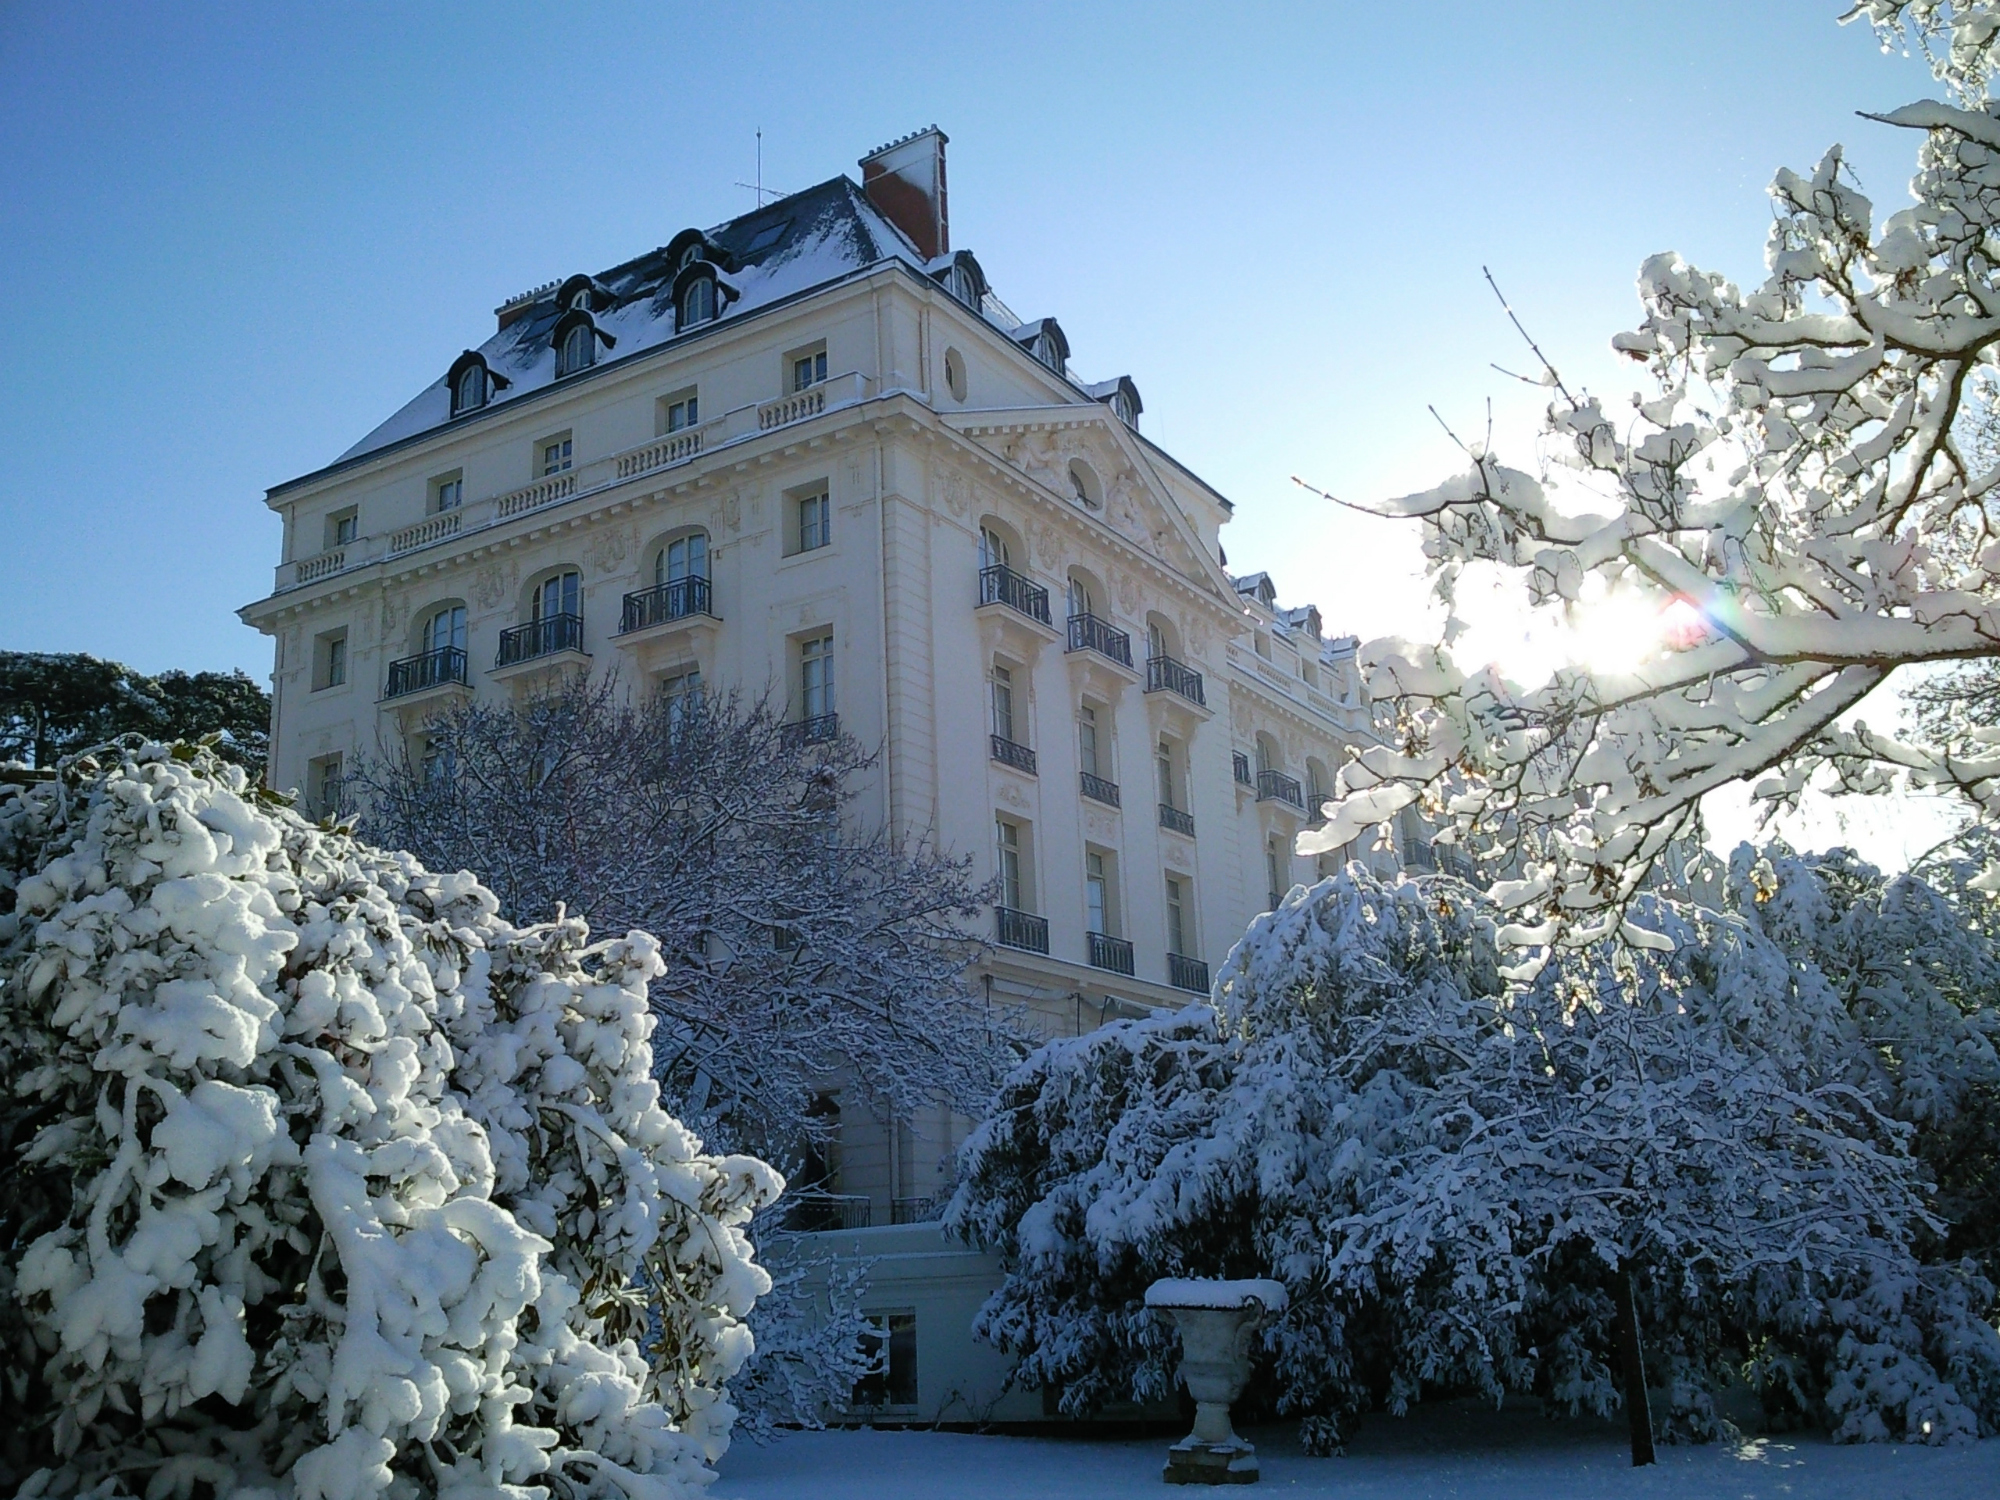 hotel in the winter surrounded by snow-covered trees